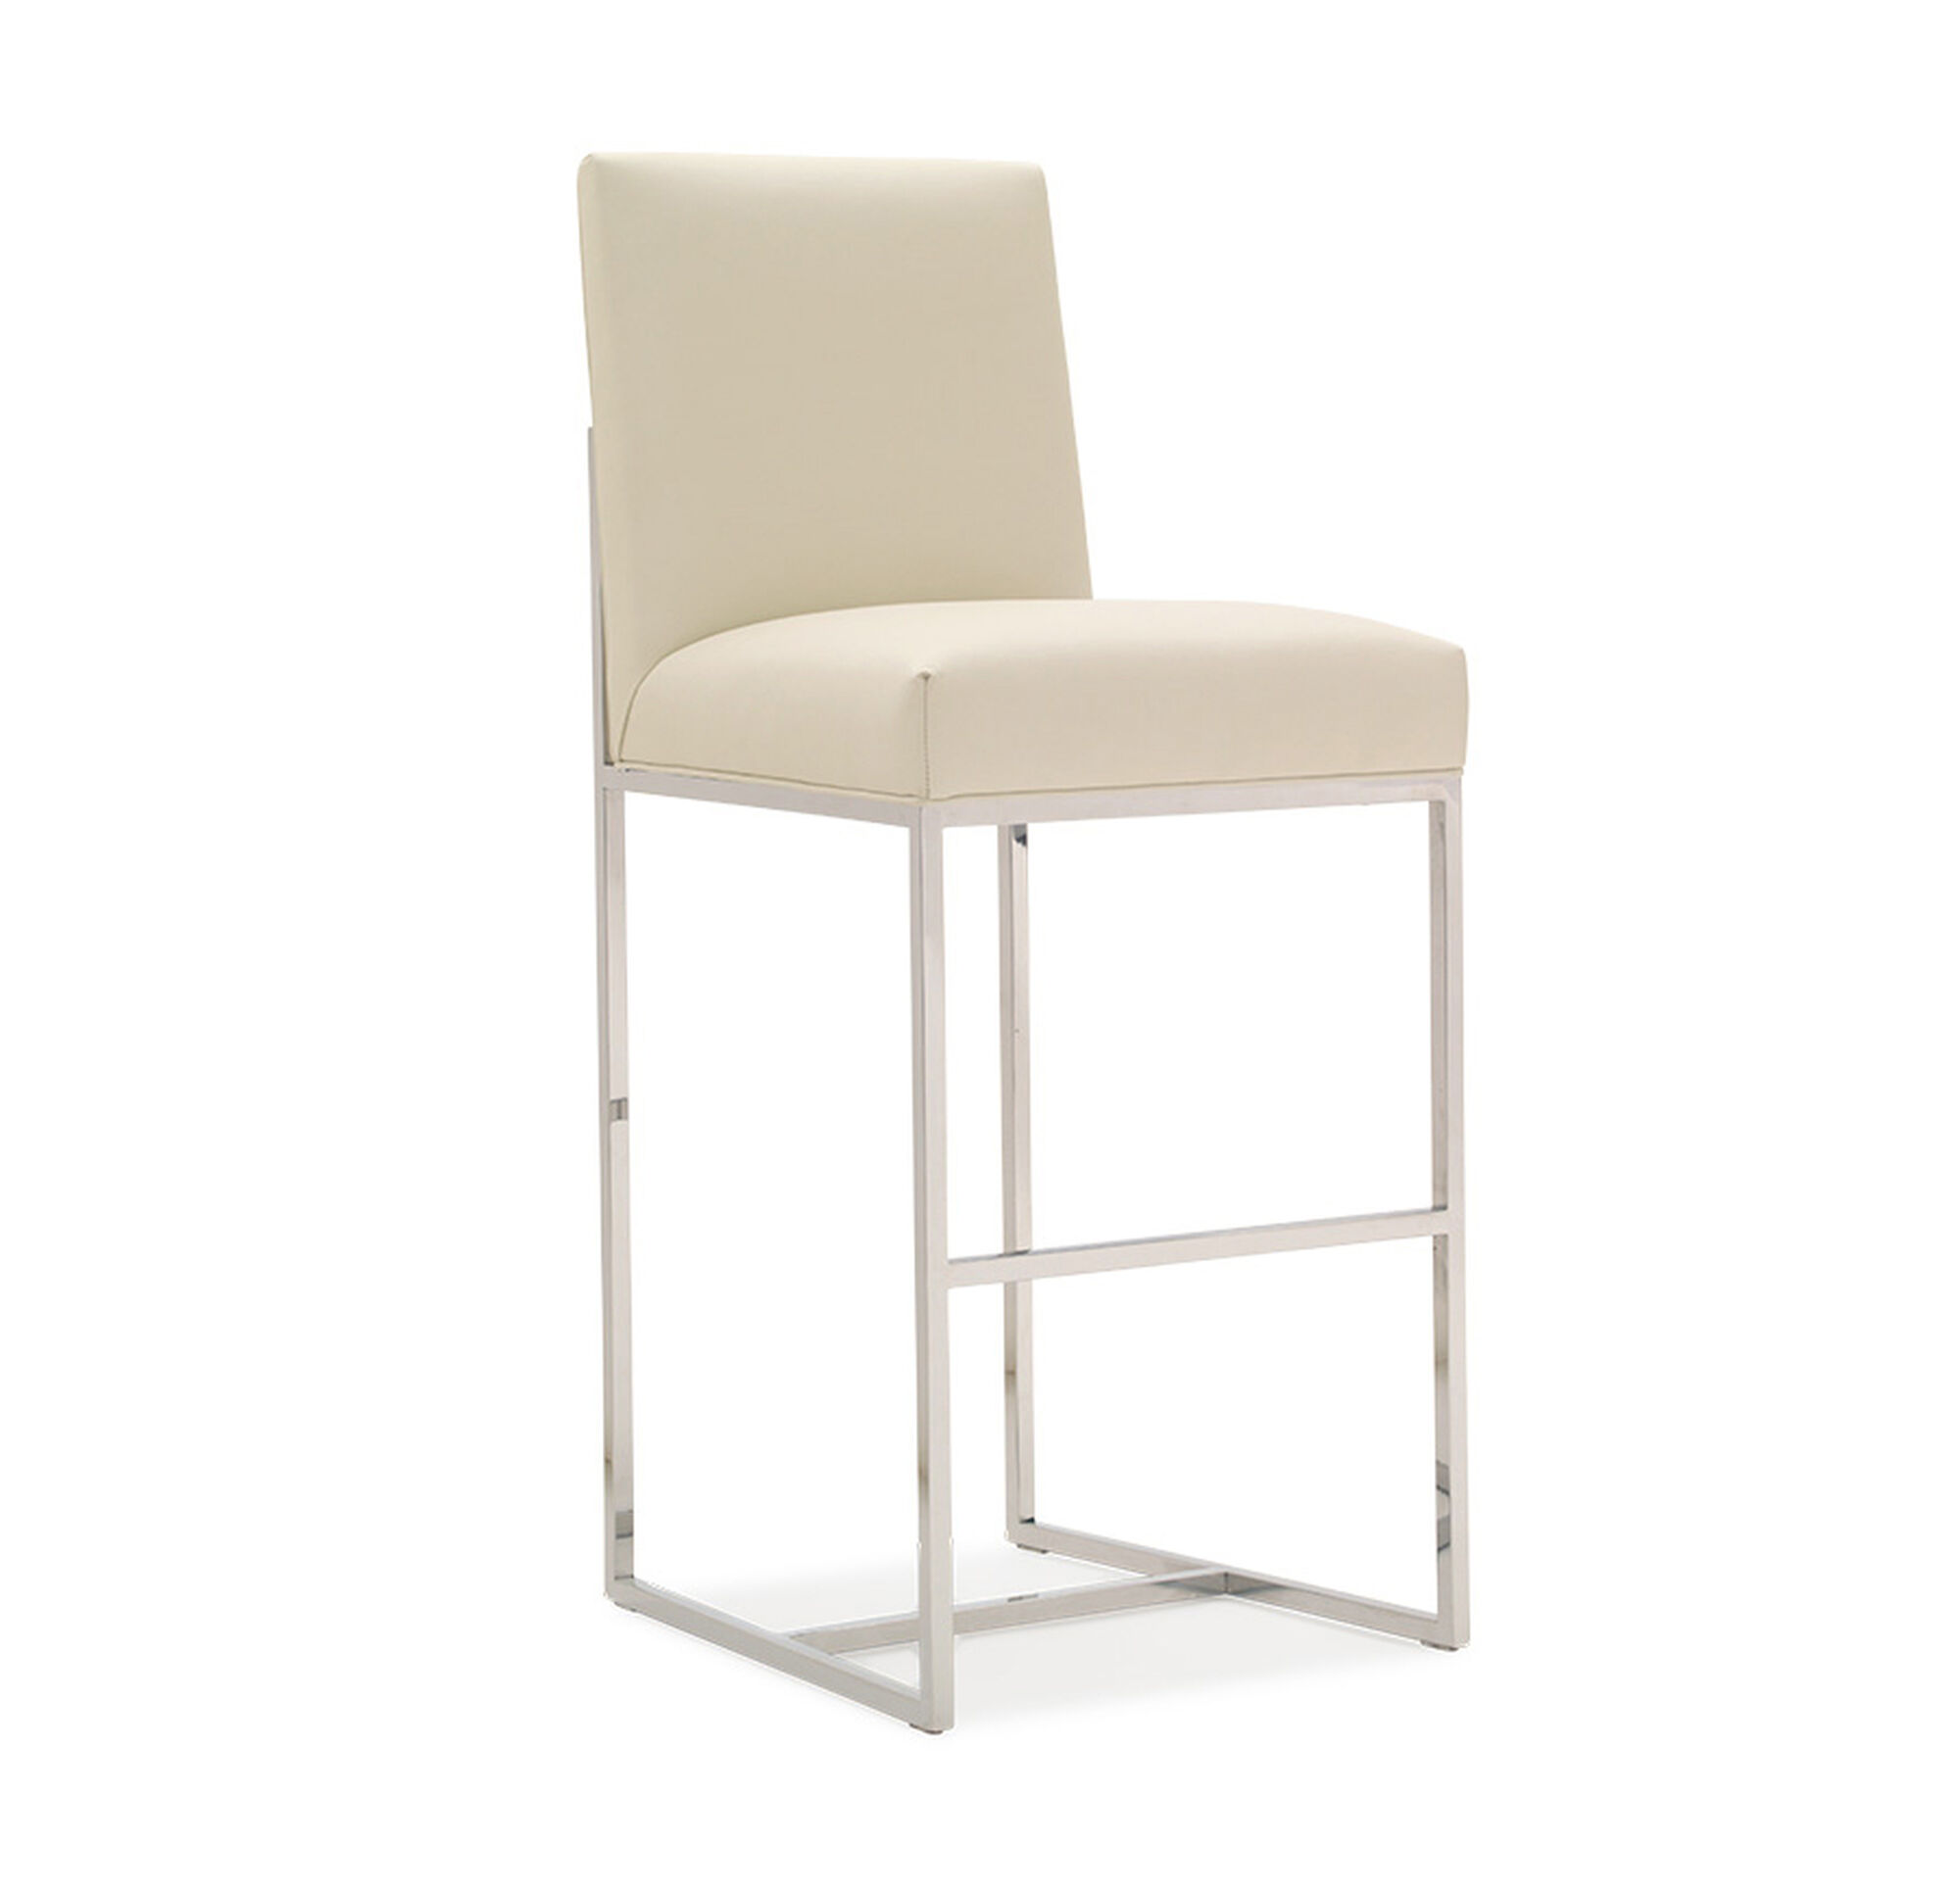 leather bar stools with arms. GAGE LEATHER BAR STOOL, CORDELL - DOVE, Hi-res Leather Bar Stools With Arms